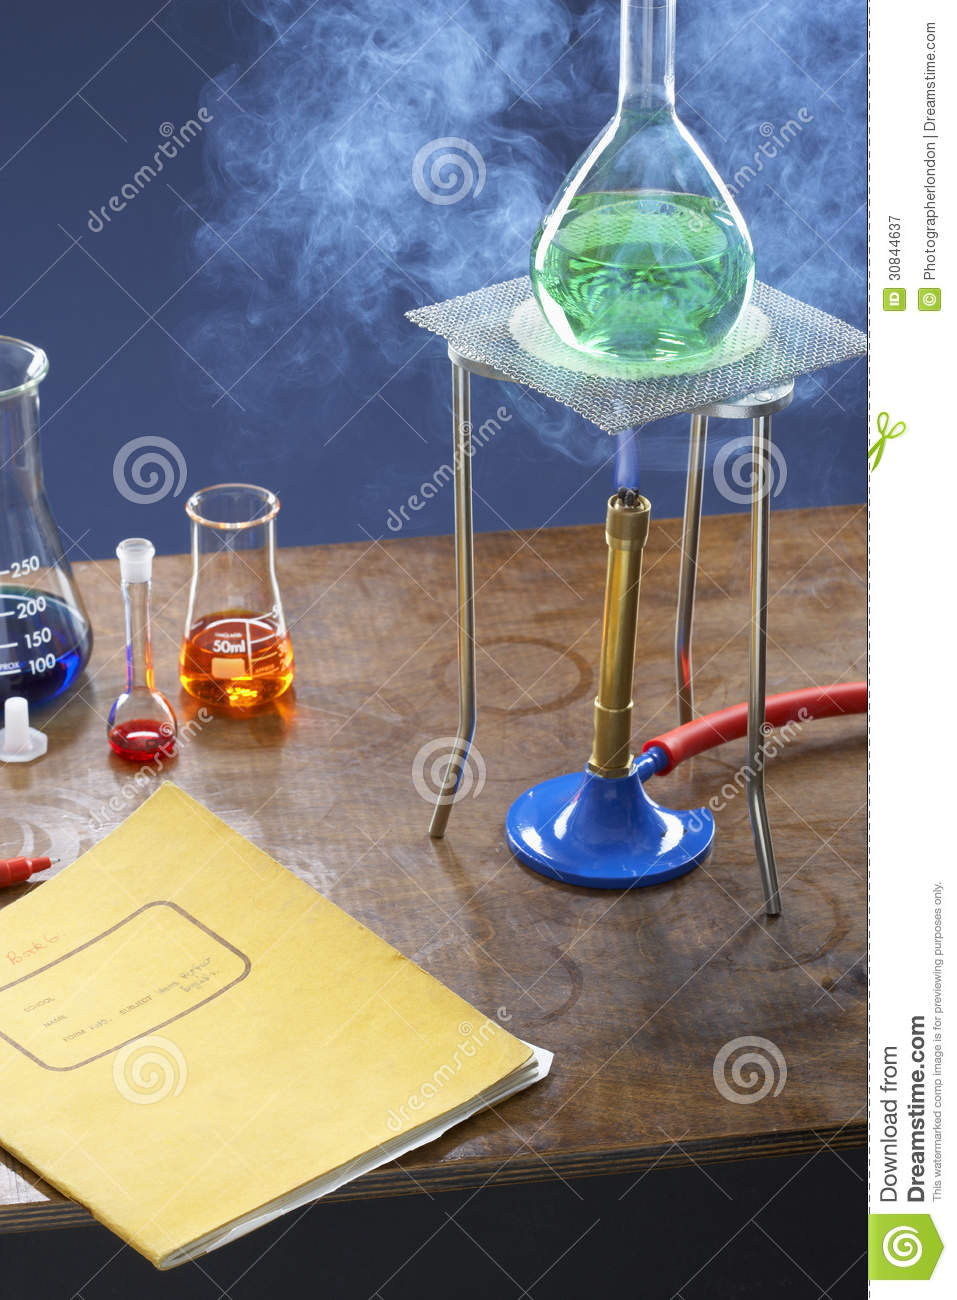 an analysis of the bunsen burner in laboratory equipments Bunsen burners for any labs budget they are one of the most used pieces of laboratory equipment in school and teaching labs and also one of the most potentially hazardous items in the lab make sure you purchase a quality bunsen burner to keep your laboratory technicians safe.